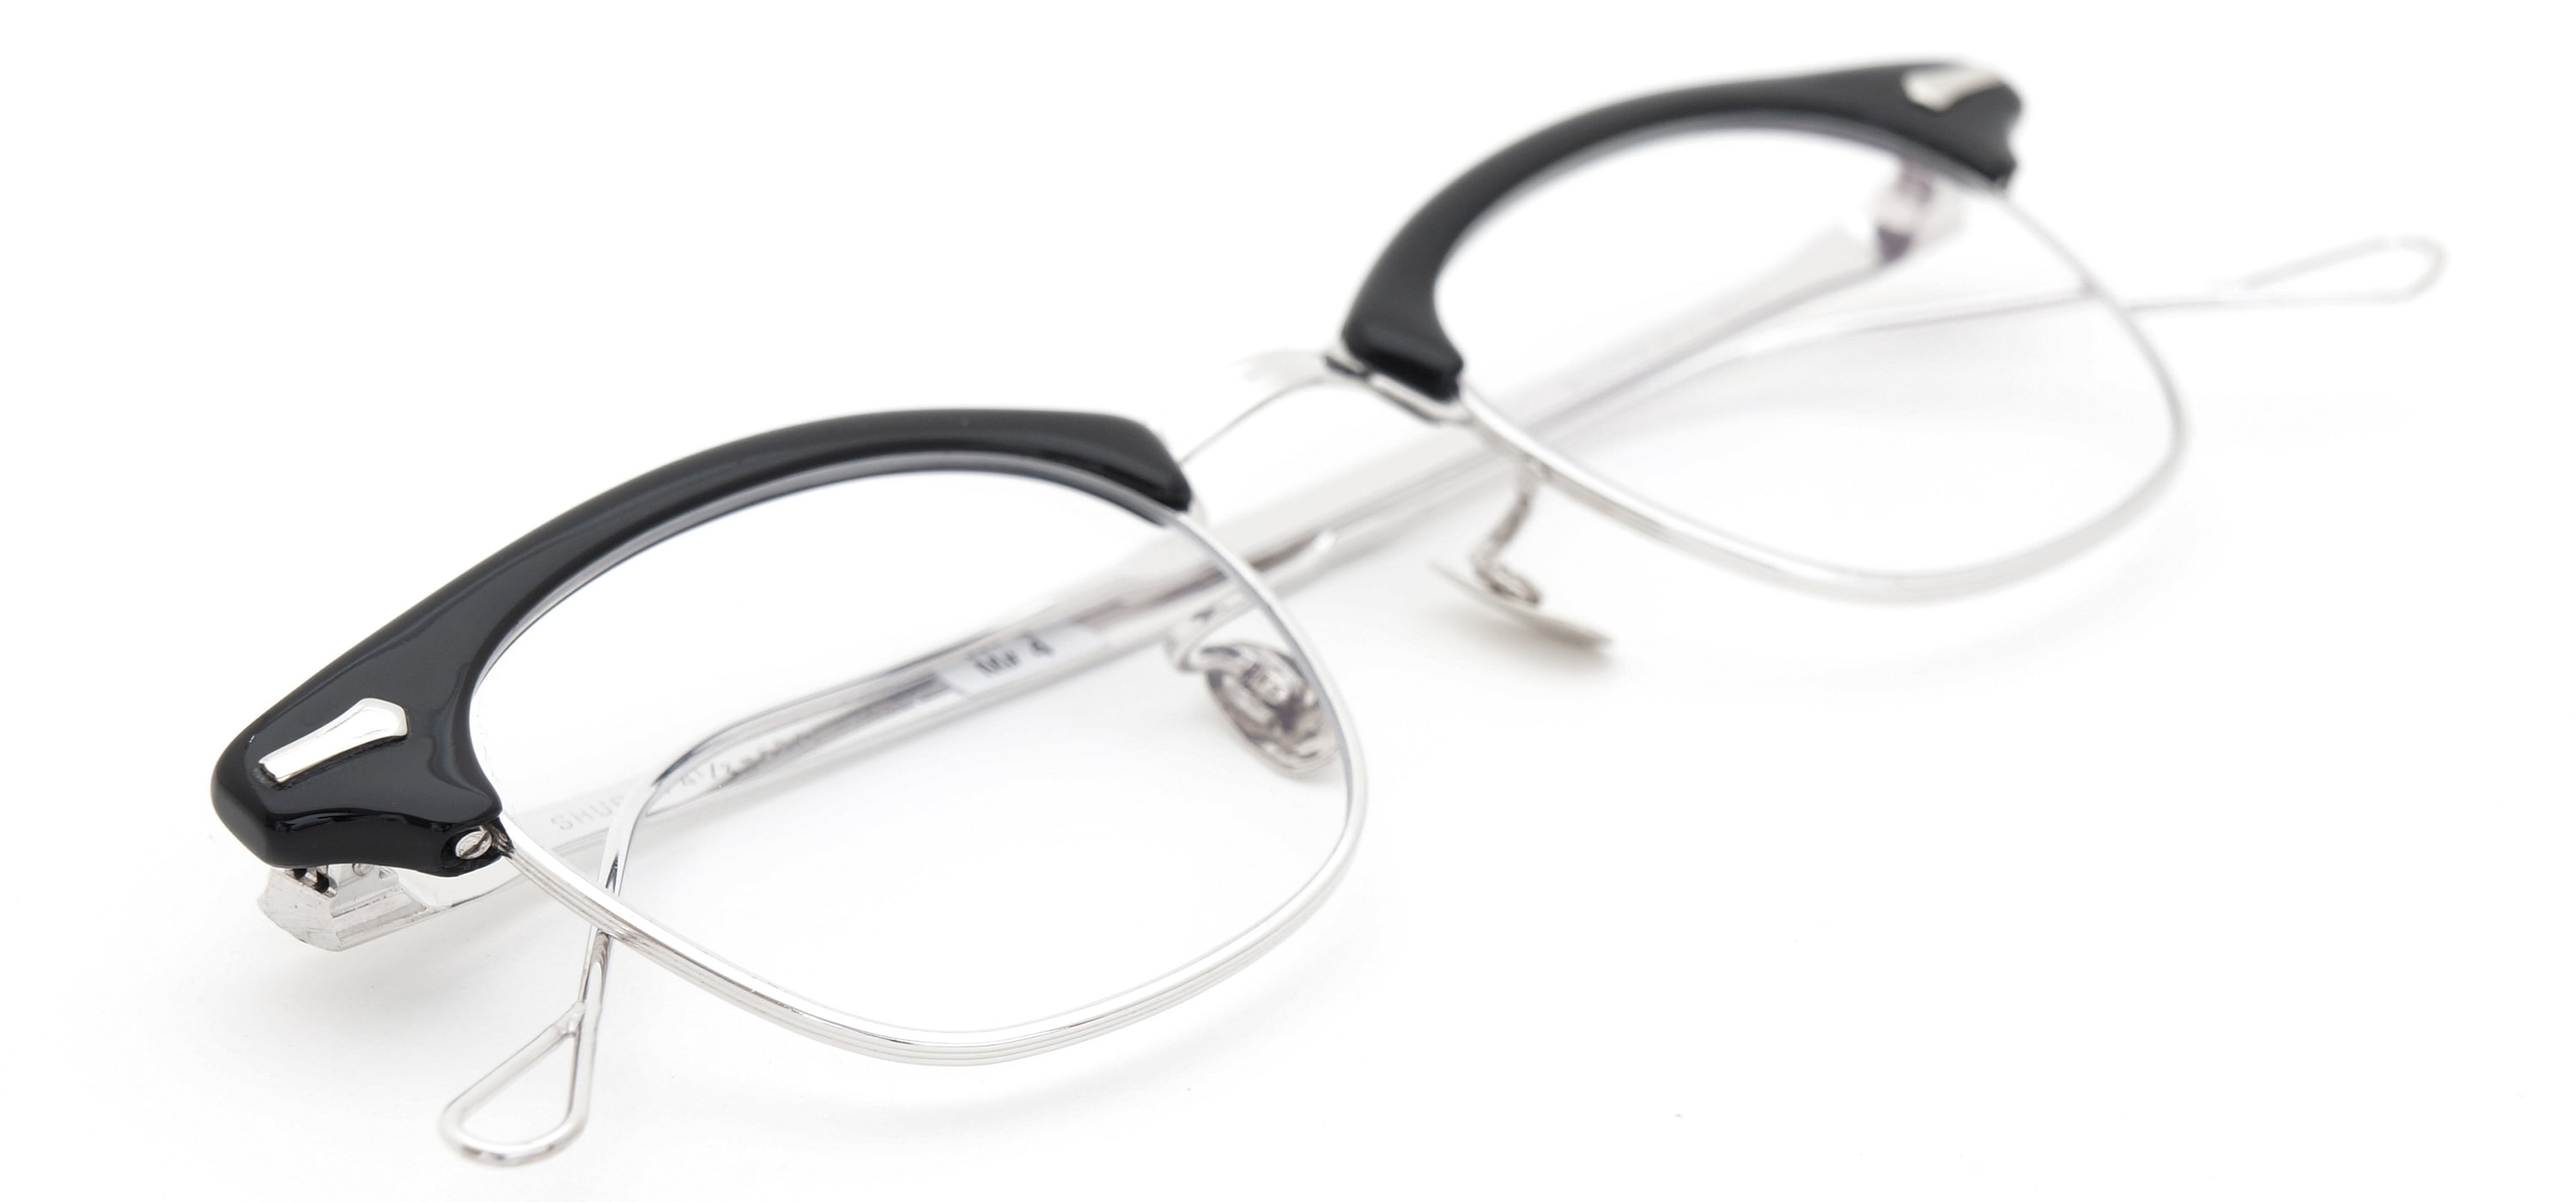 The Spectacle メガネ 1950s-1960s SHURON RONSIR GF-Temple Black WG 1/10 12KGF 46/22 イメージ16